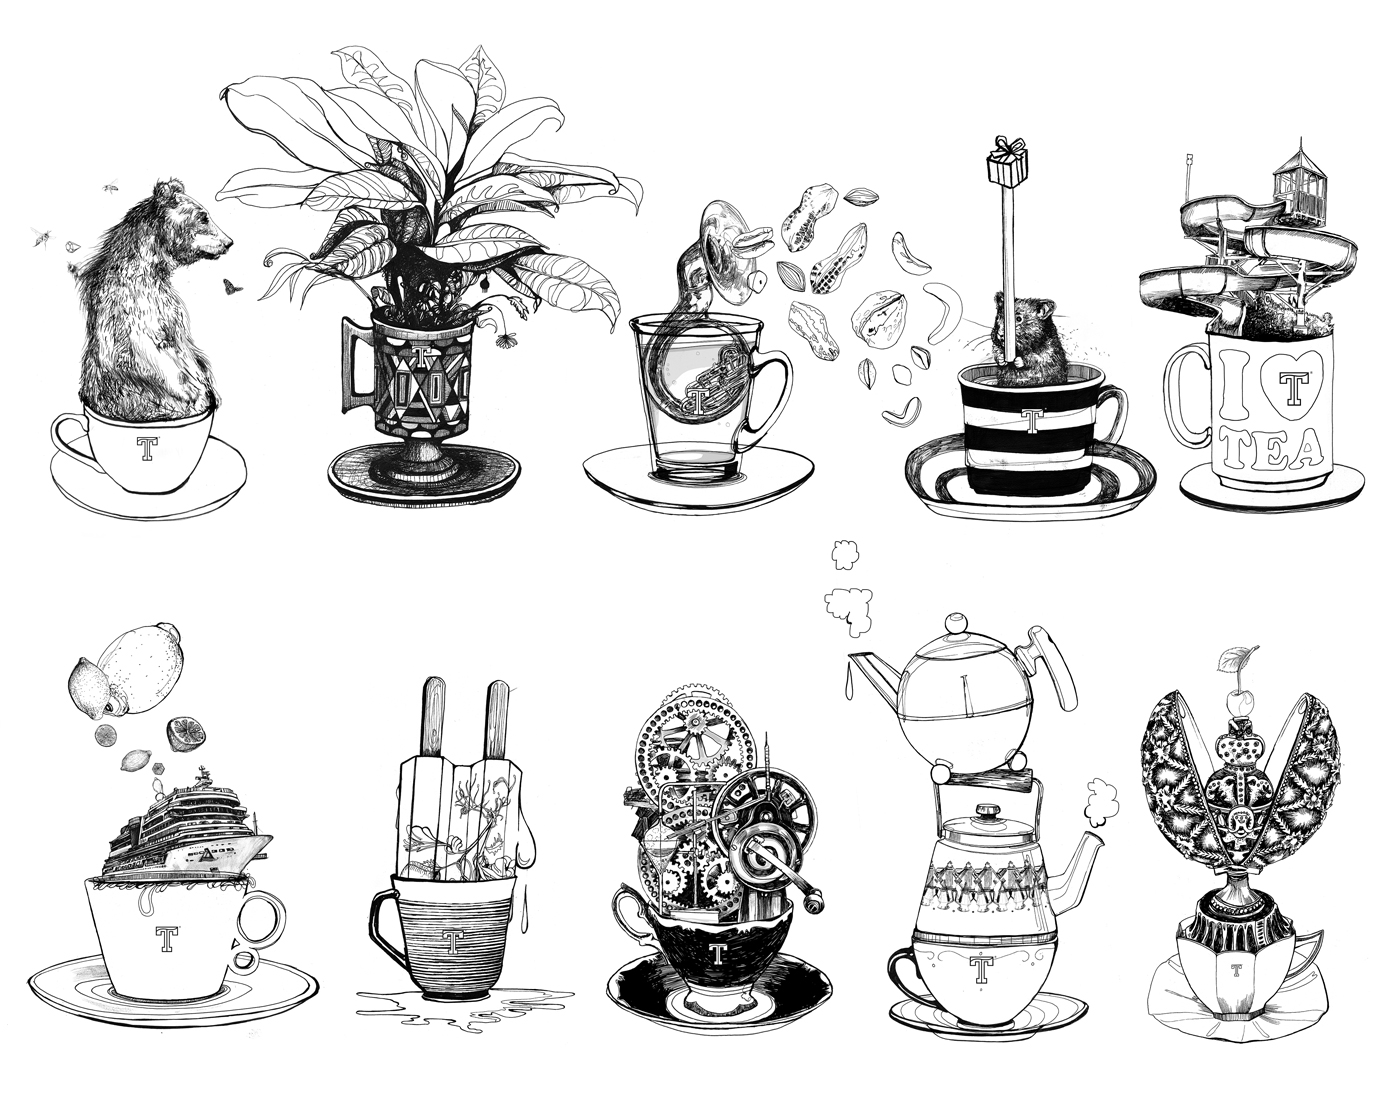 fig. 5. A selection of illustrated tea flavours and tea gifts